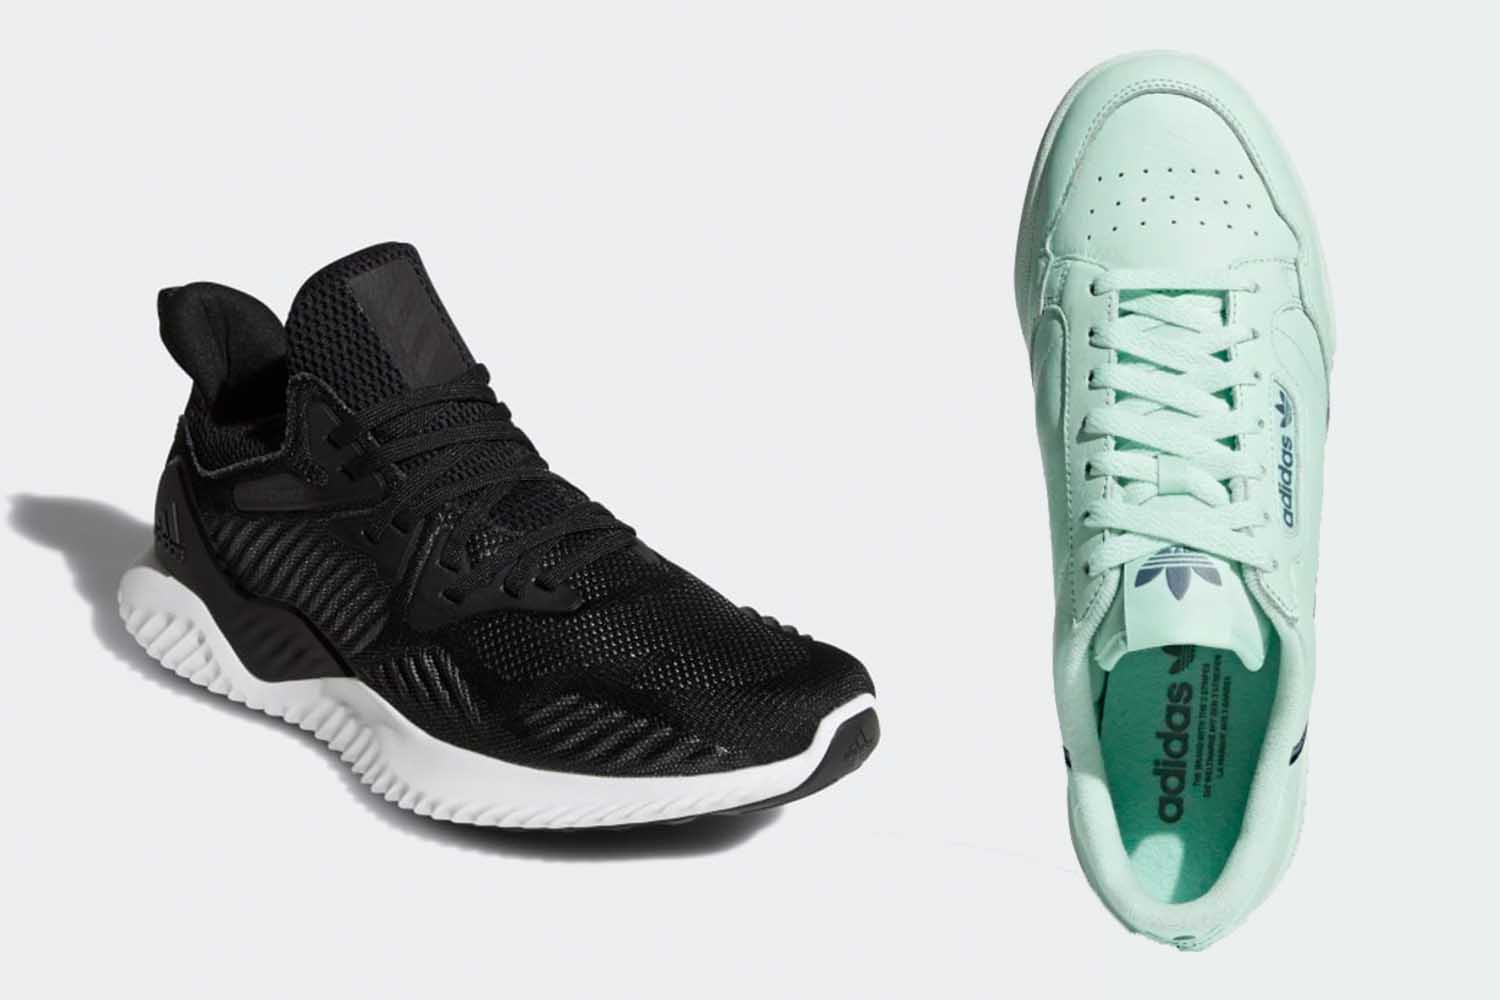 Take an Additional 30% Off Already Marked Down Adidas Sneakers